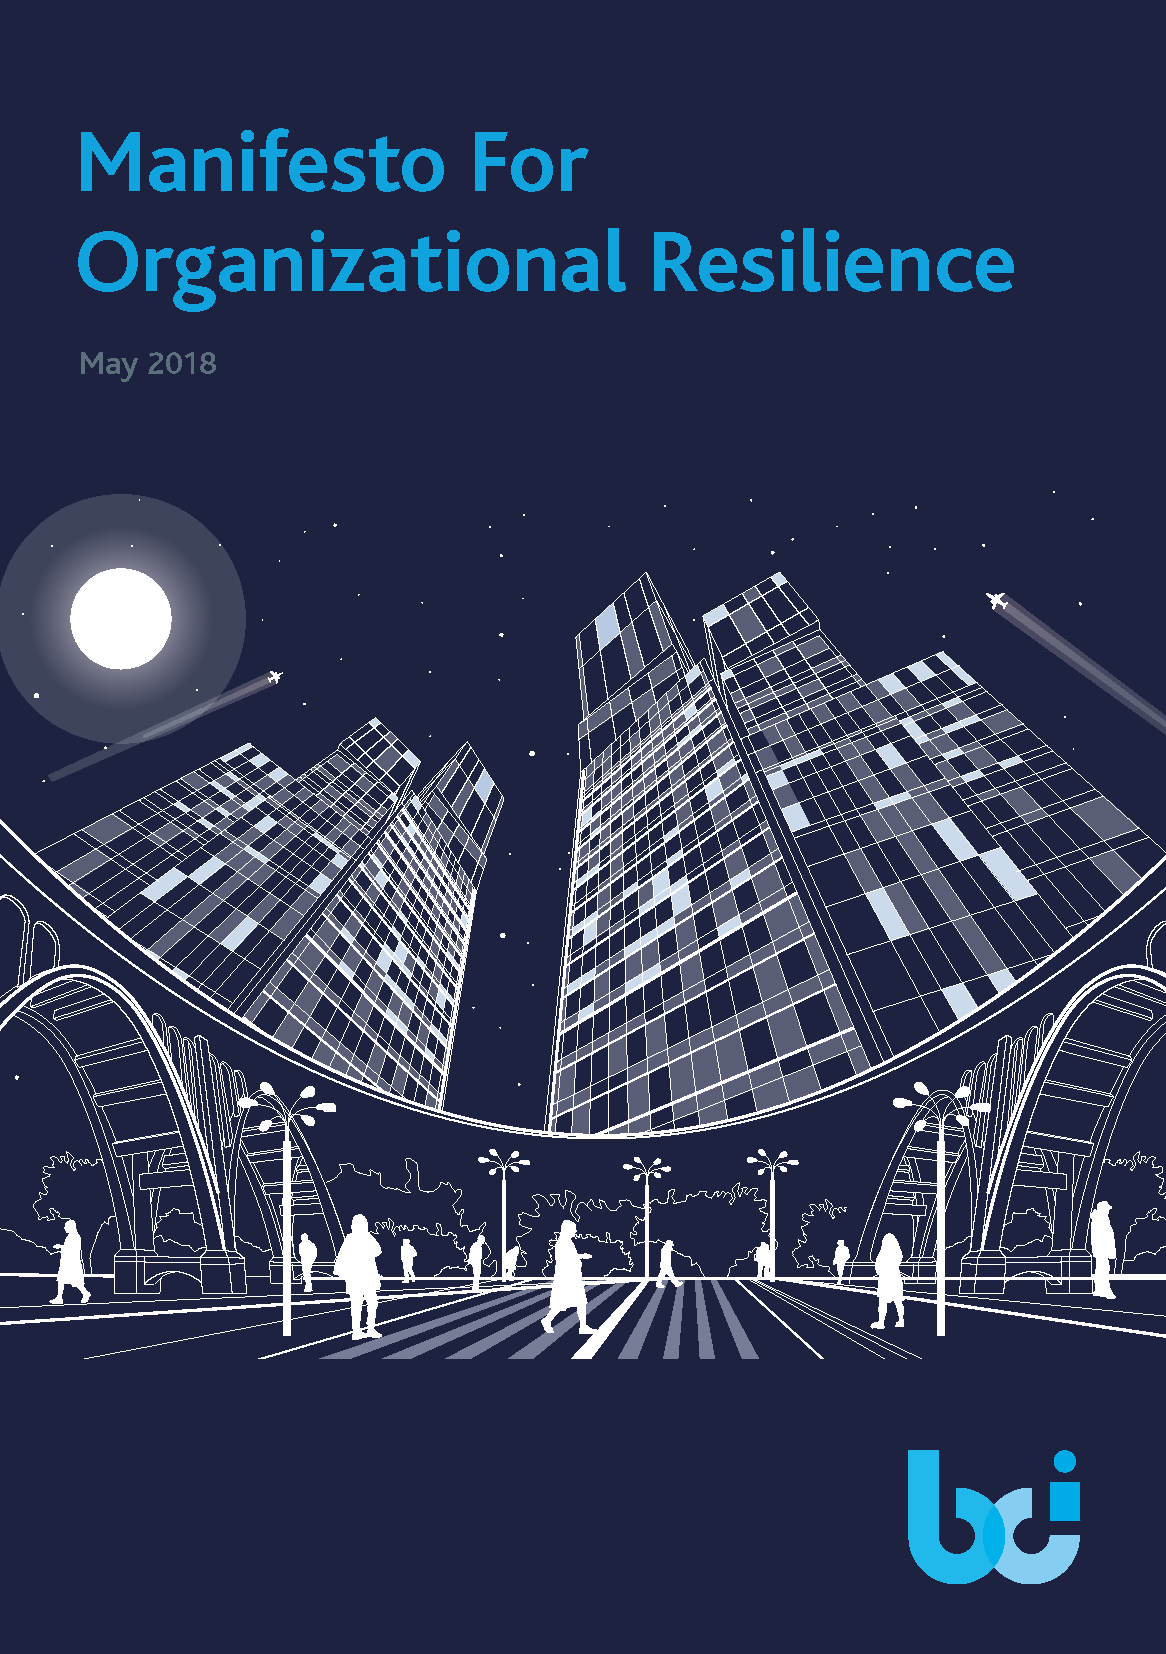 Manifesto-for-Organizational-Resilience.png